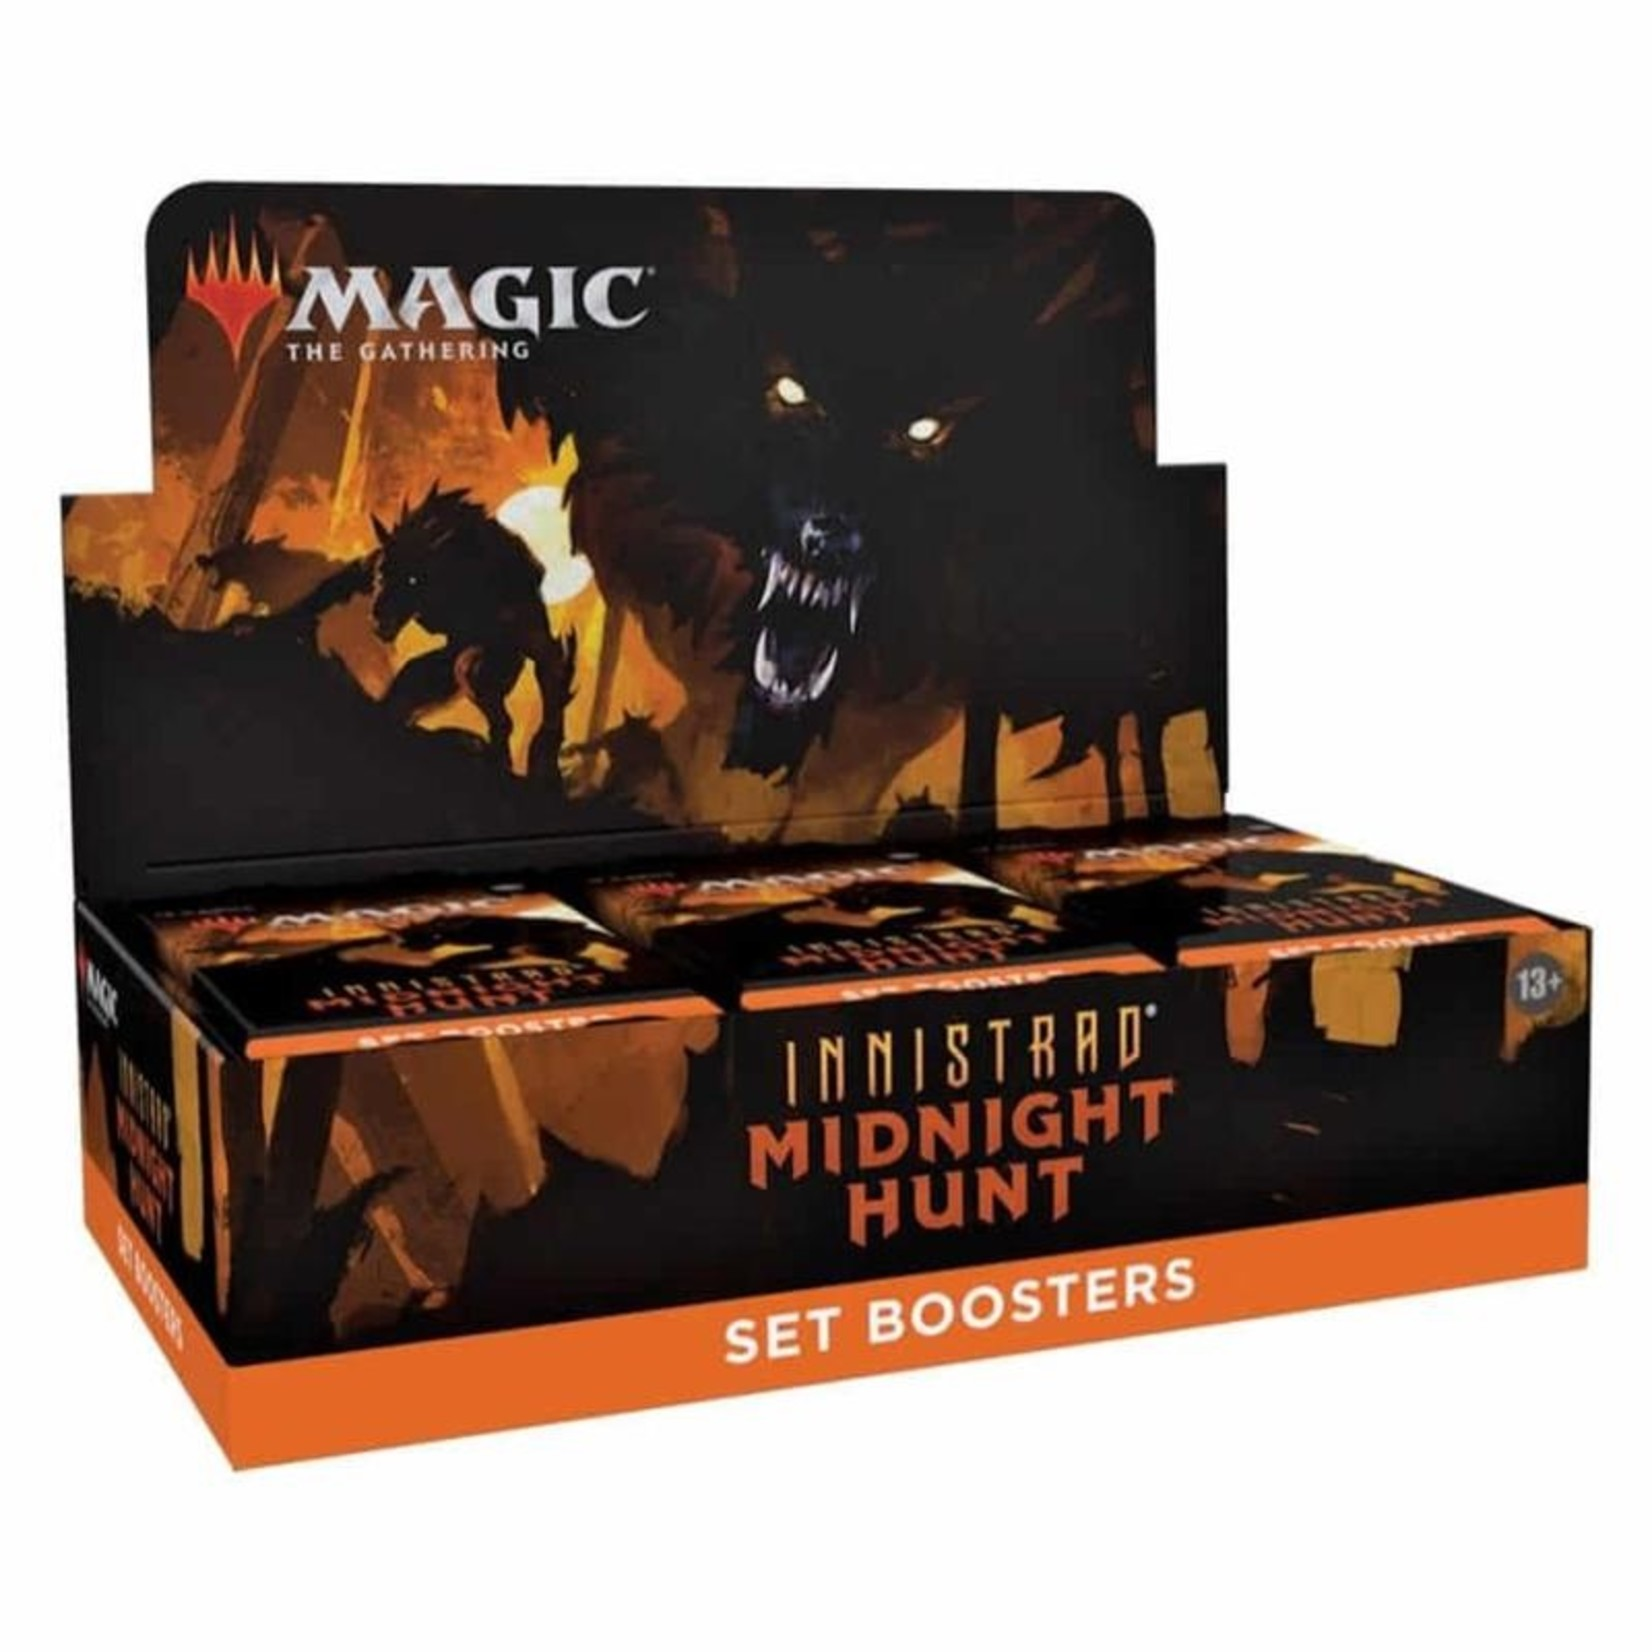 Wizards of the Coast Innistrad - Midnight Hunt Set Booster Display